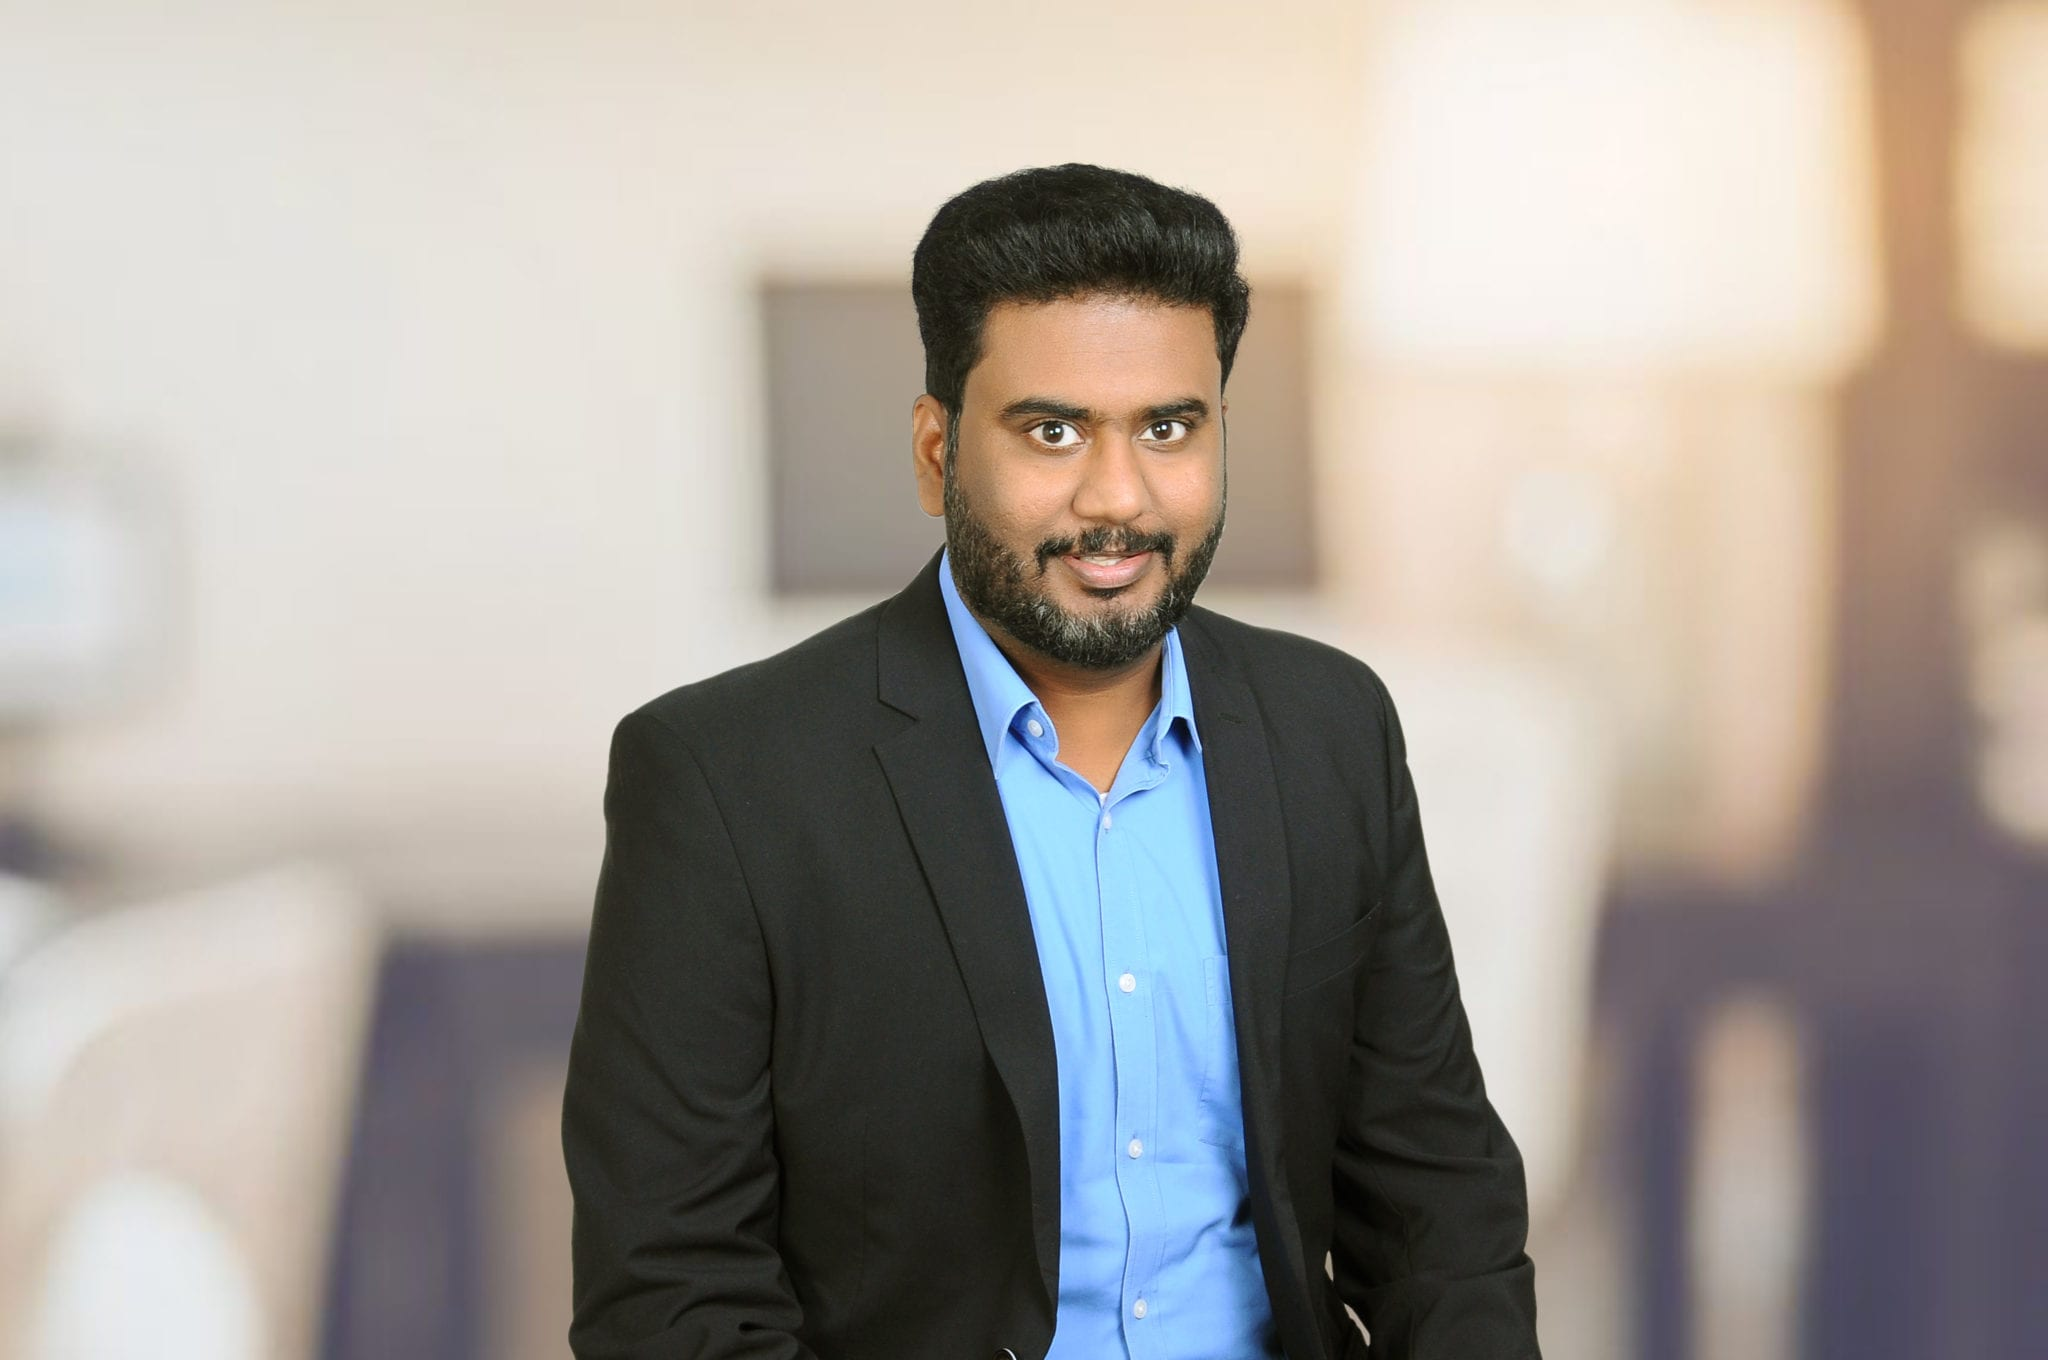 Beyond The Data: Rajgauthaman Shanmugasunda, Program Manager